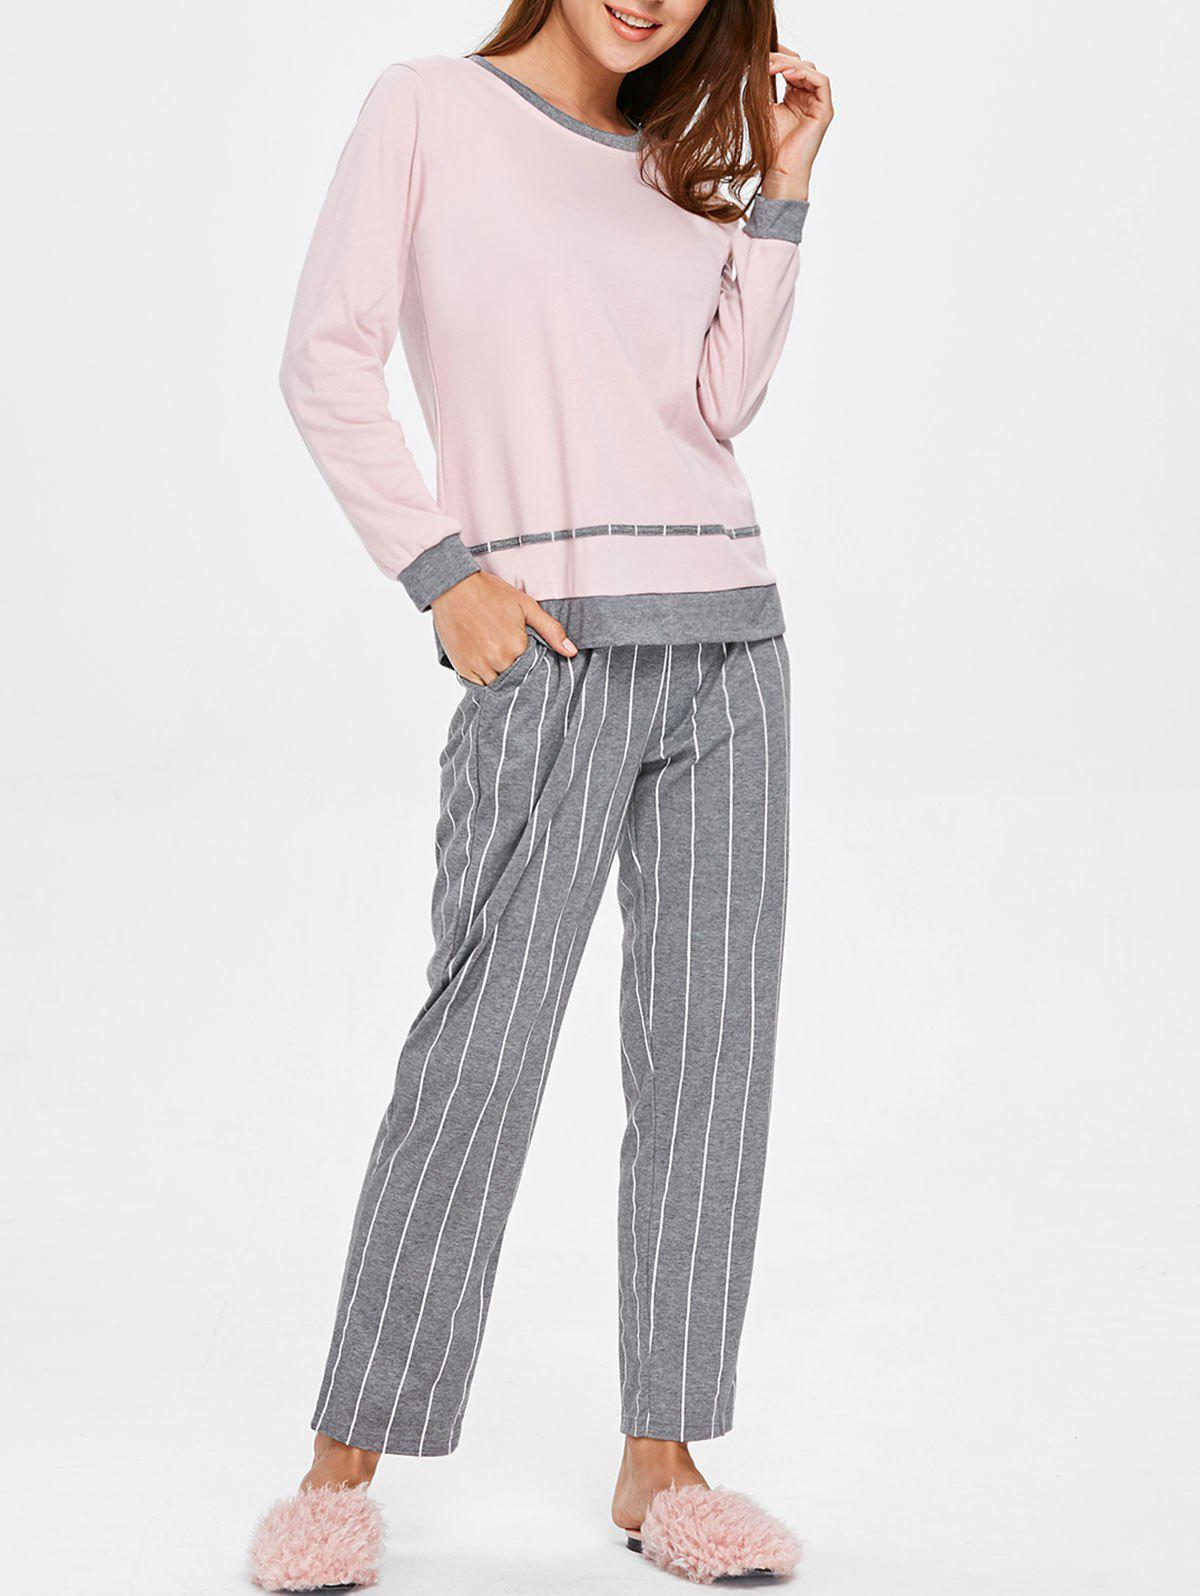 Unique Sleep Set Color Block Top with Striped Pants